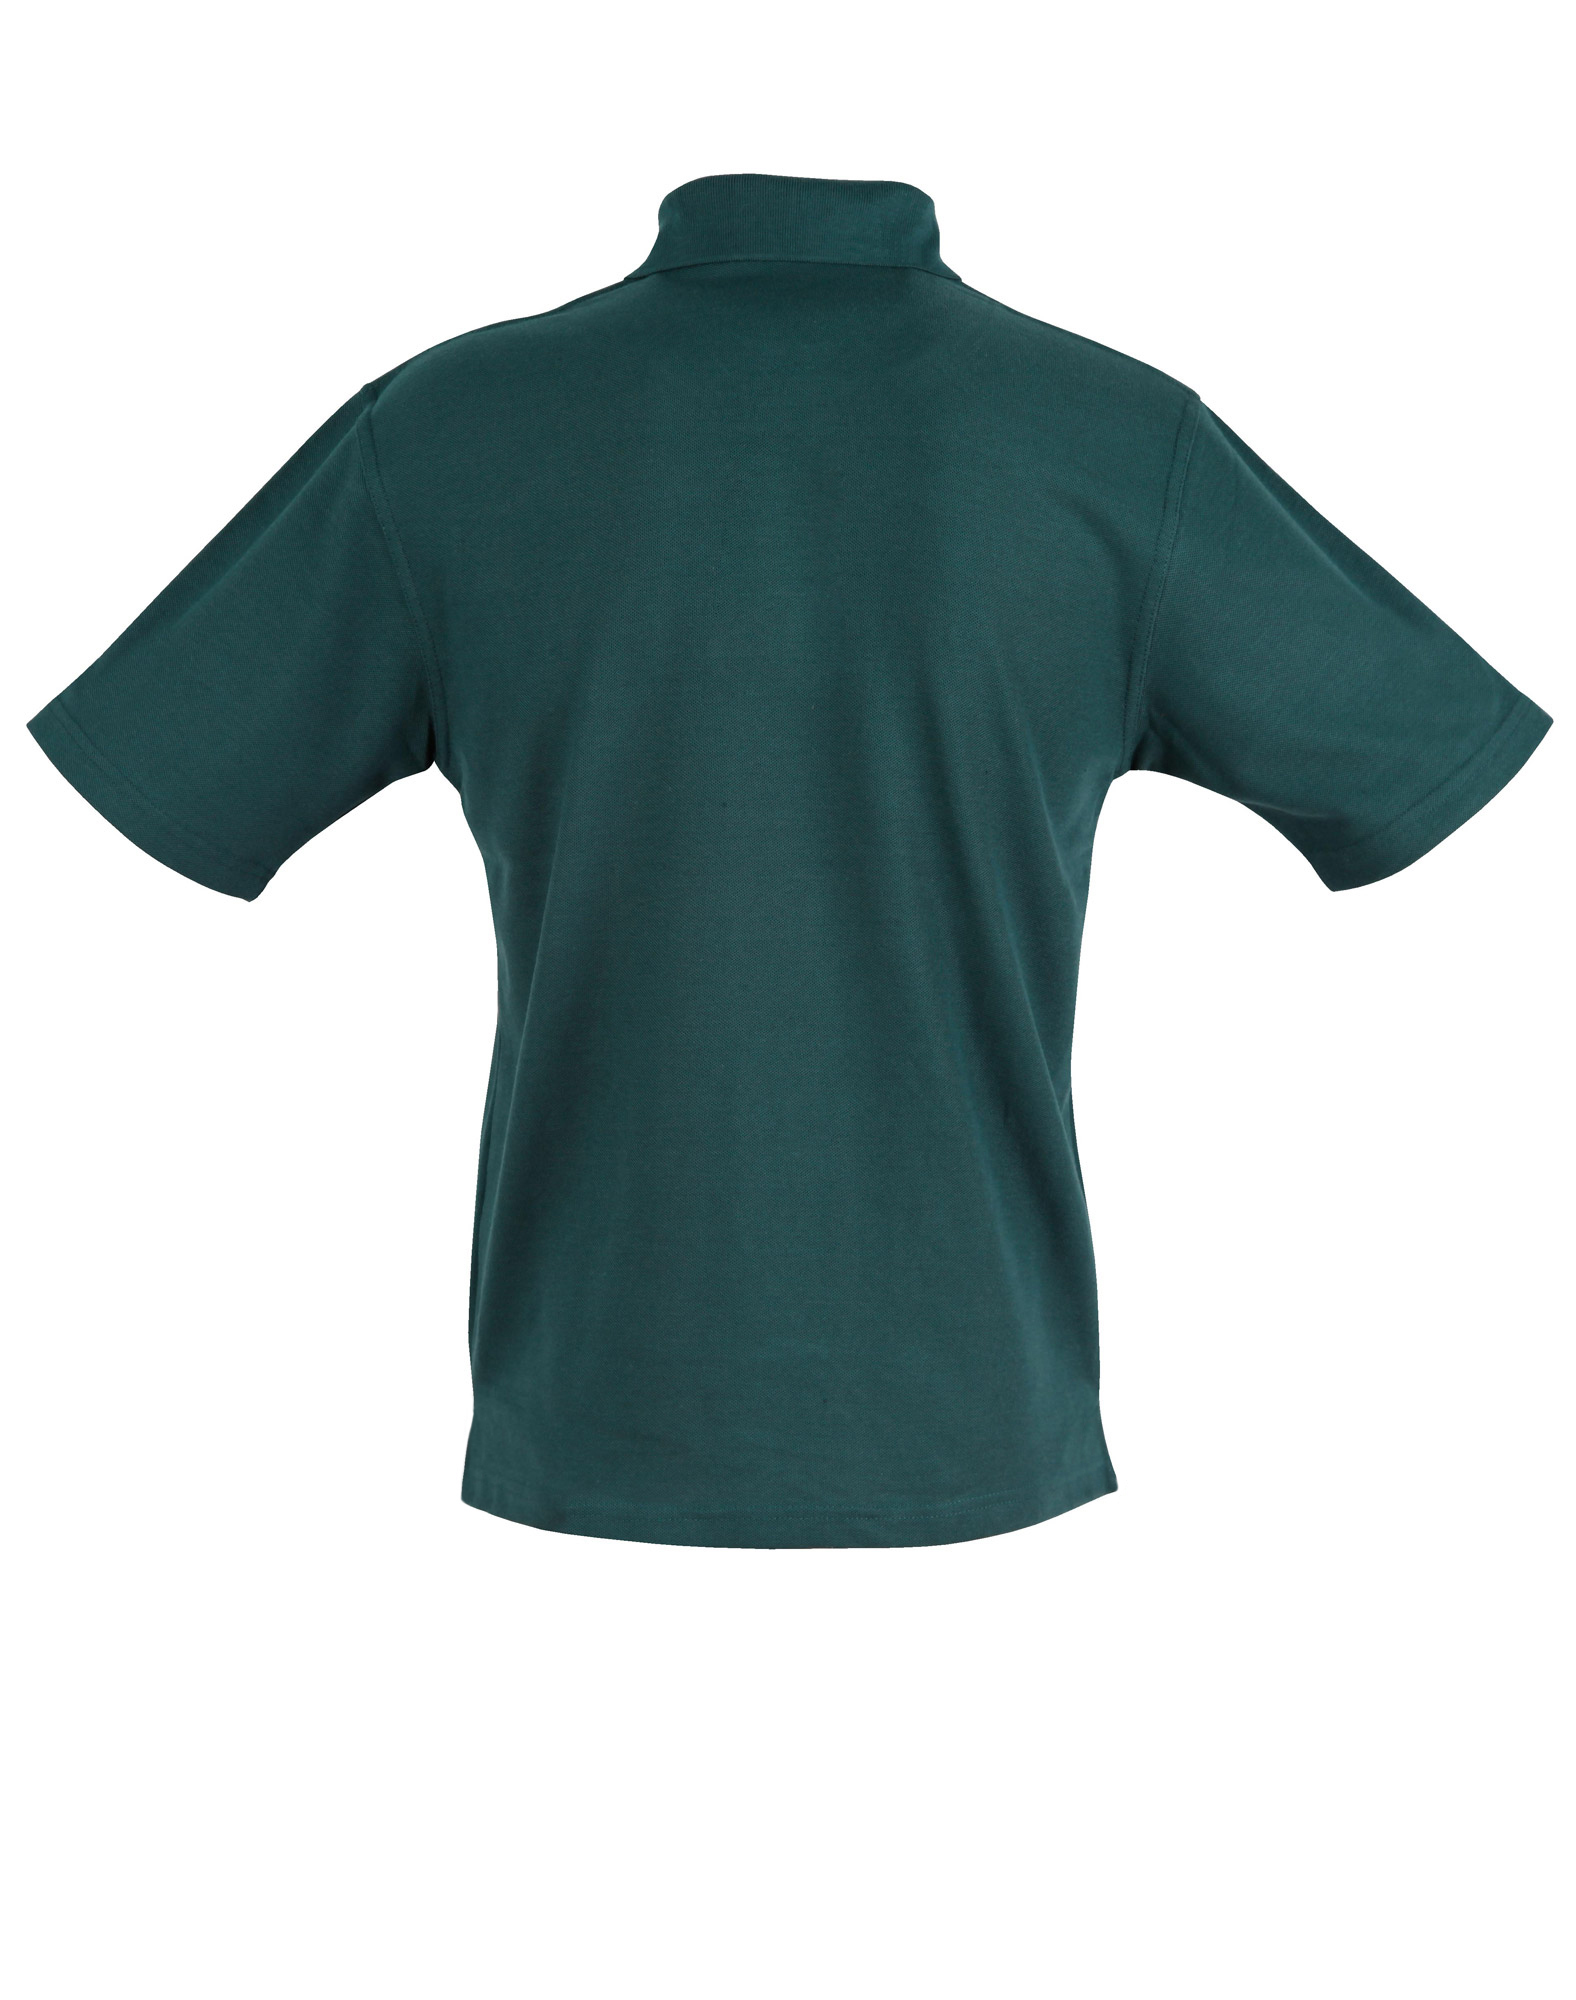 https://s3-ap-southeast-1.amazonaws.com/ws-imgs/POLOSHIRTS/PS11K_Bottle_Back_l.jpg